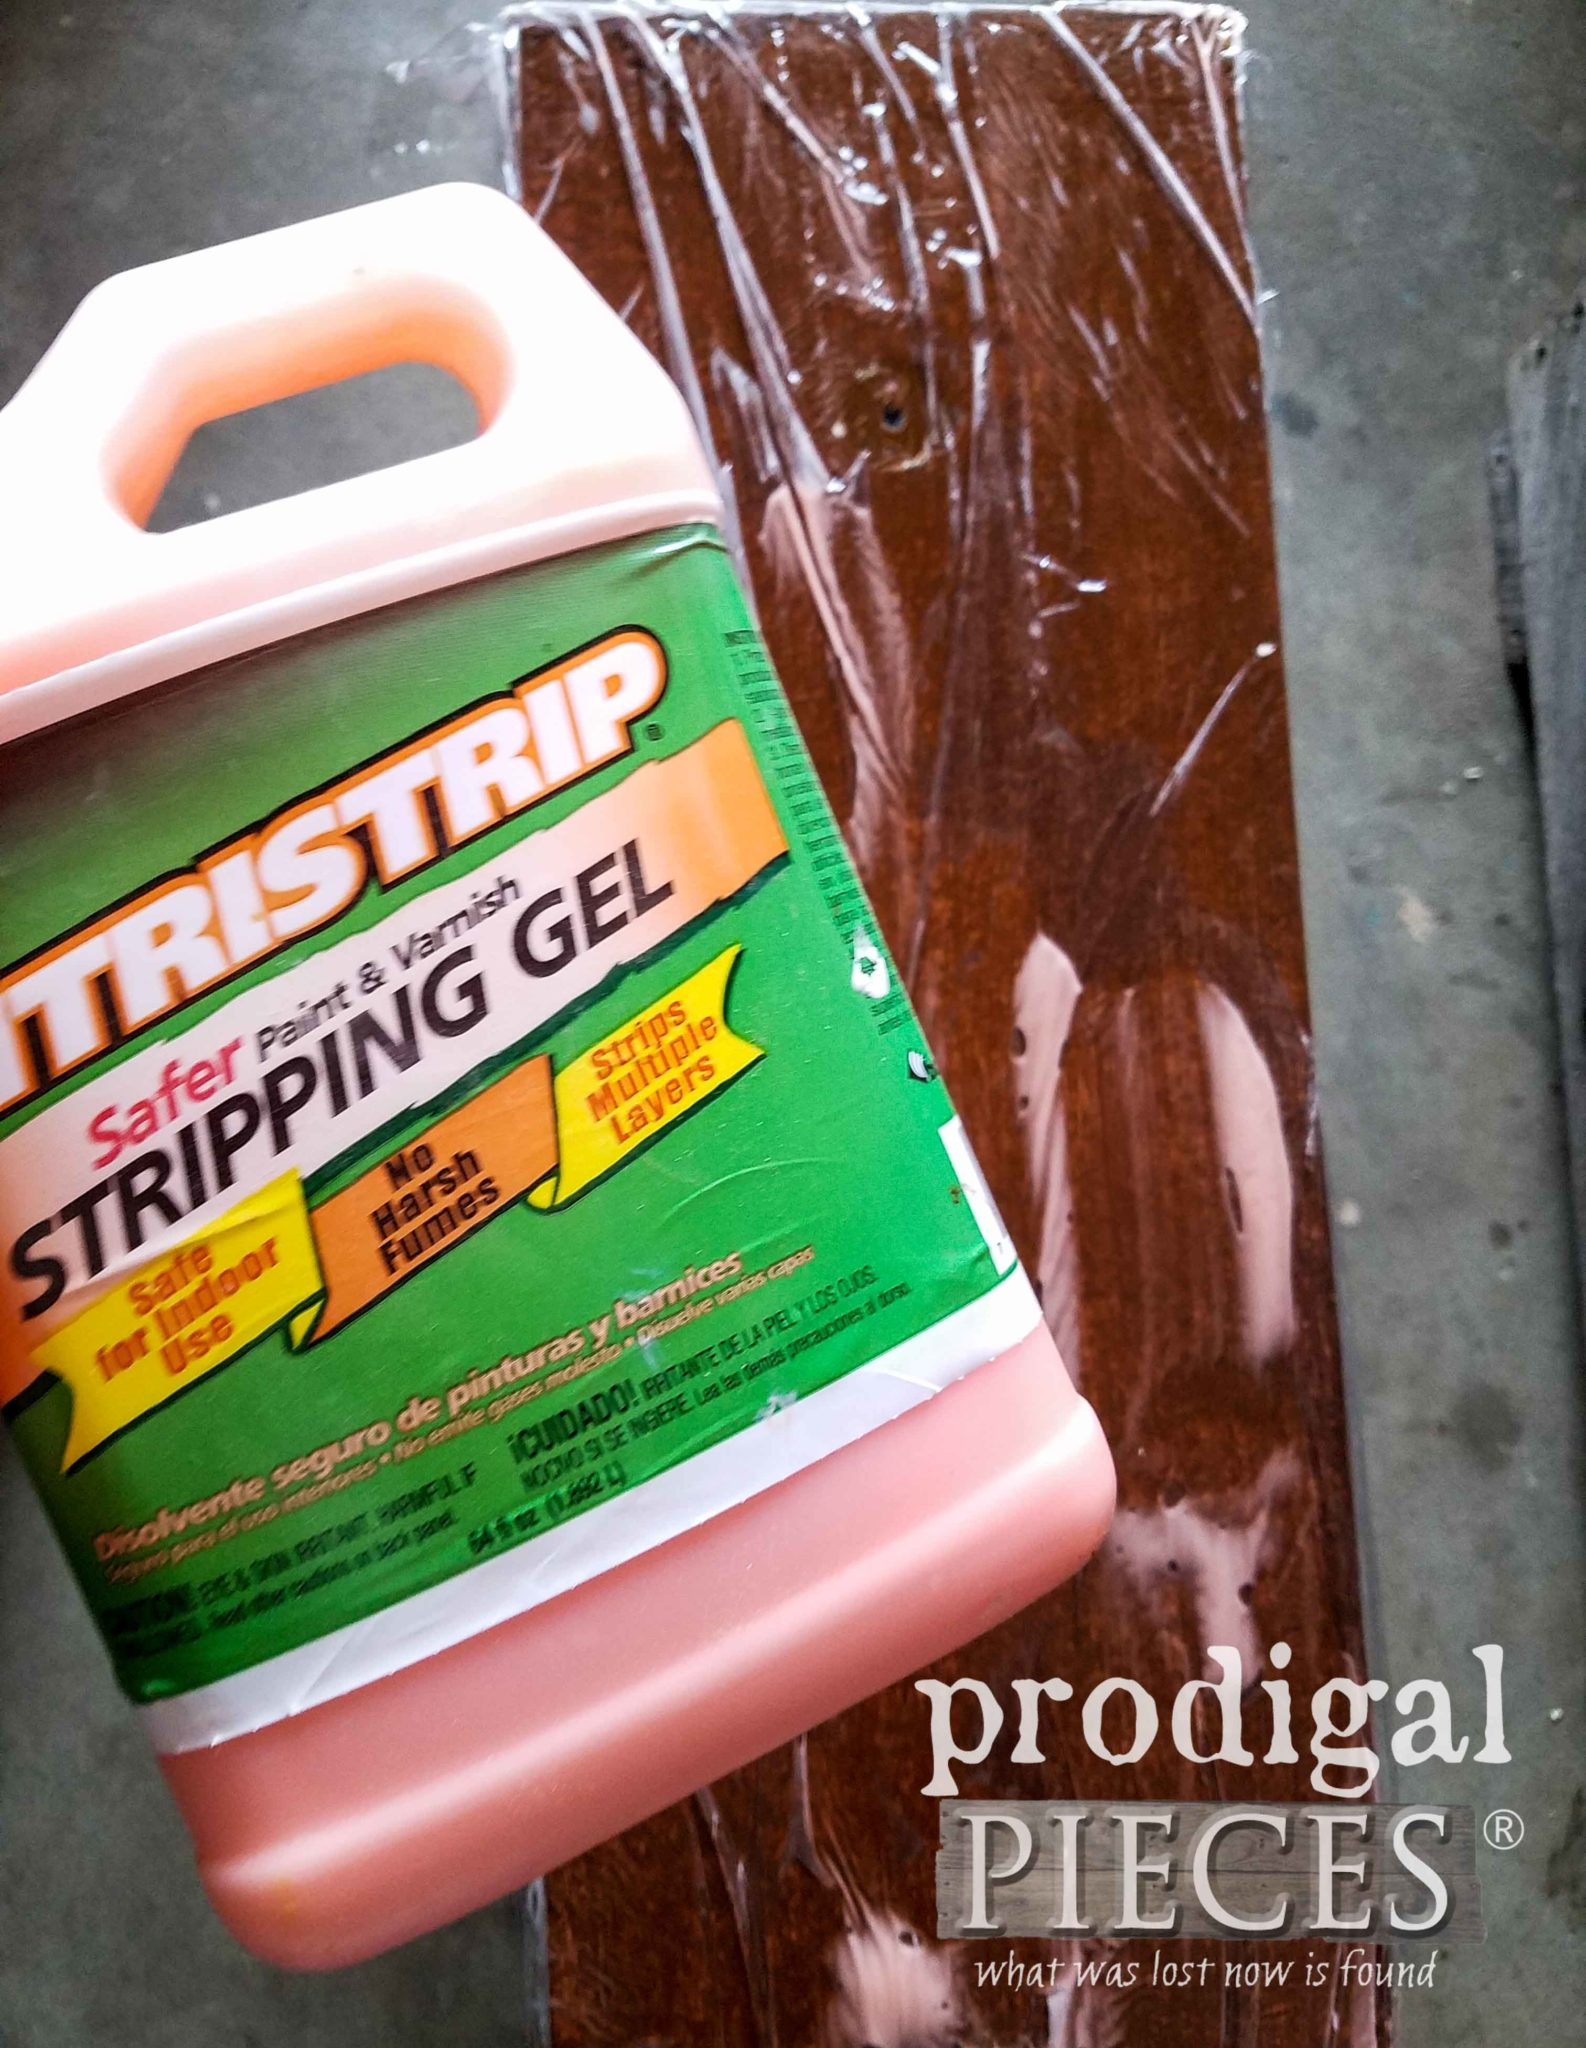 Using CitriStrip Stripping Gel to Remove Old Paint | prodigalpieces.com